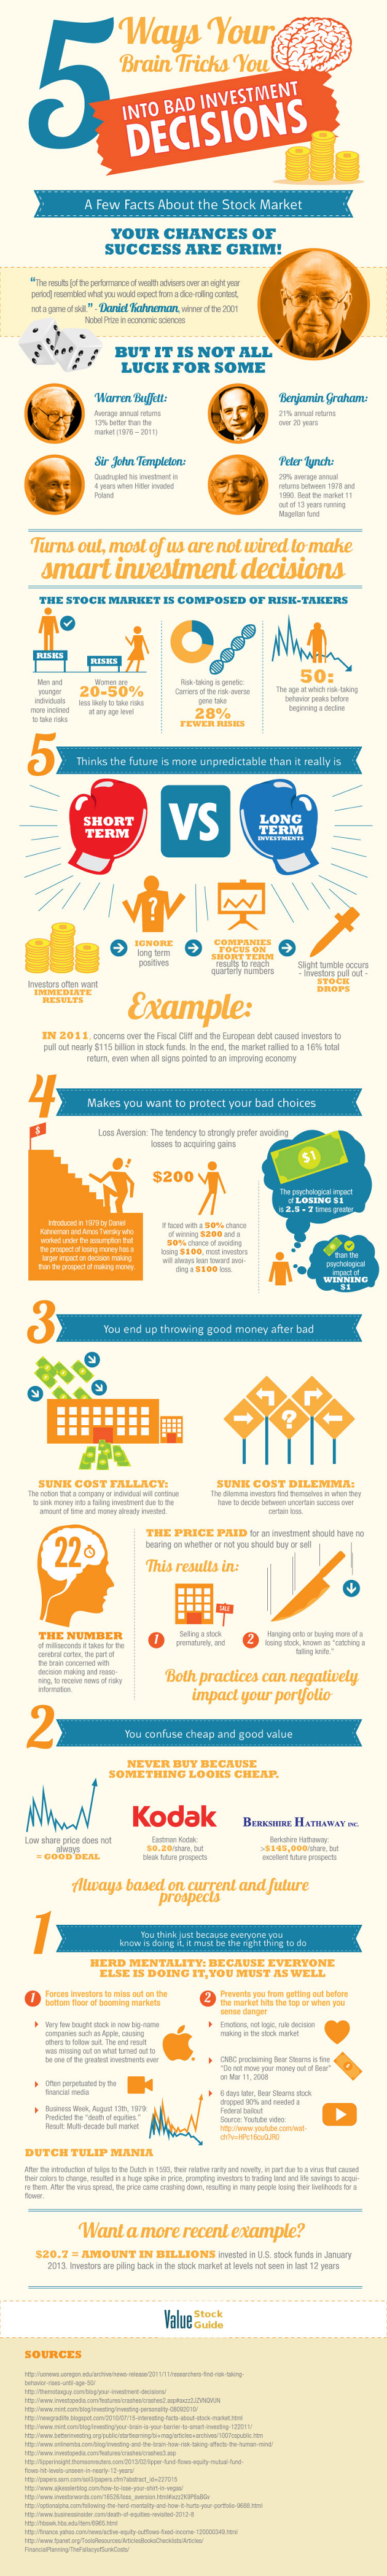 5 ways your brain tricks you into bad investment decisions - infographic